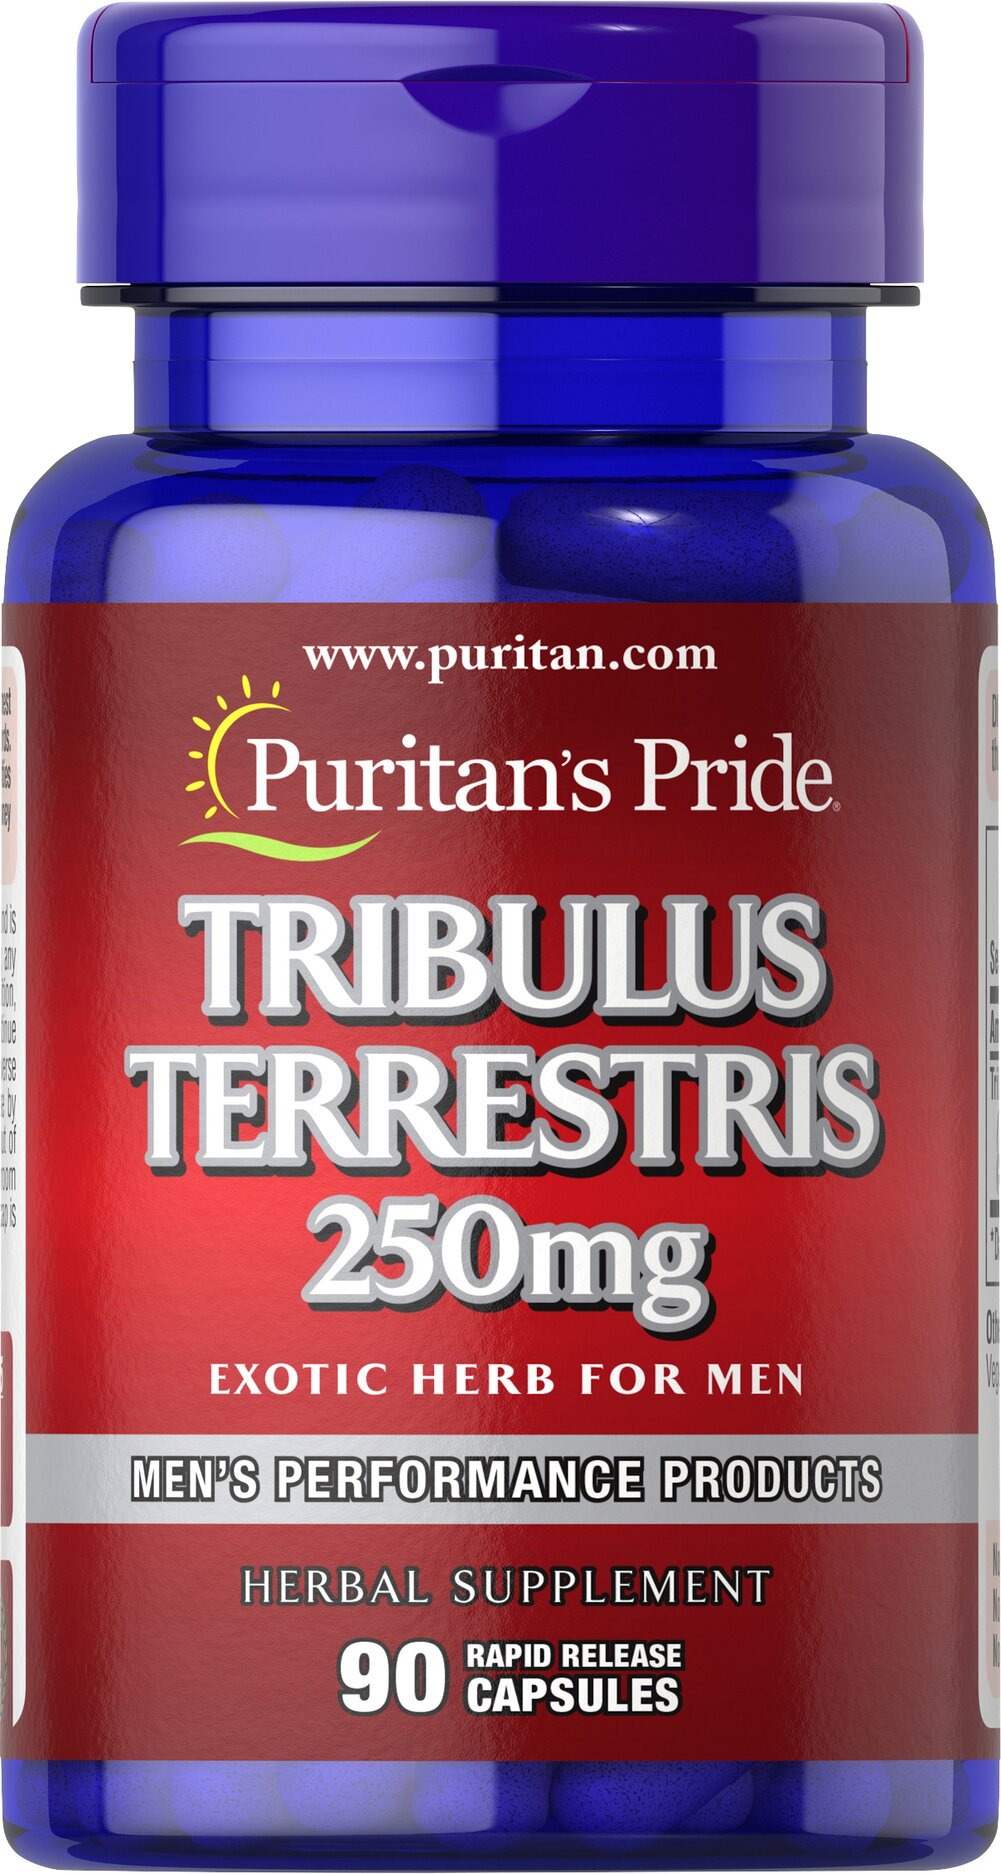 Bulgarian Tribulus Terrestris 250 mg <p>Product of Bulgaria</p><p>For Men</p><p>Tribulus Terrestris can be found throughout Europe and Asia, where it has long been popular with bodybuilders. Tribulus Terrestris is lab-tested for 40% saponins per serving, one of the highest standardized levels available on the market today! As an herb traditionally used by men, Tribulus Terrestris is the perfect complement to your active lifestyle.</p>  90 Capsules 250 mg $9.99